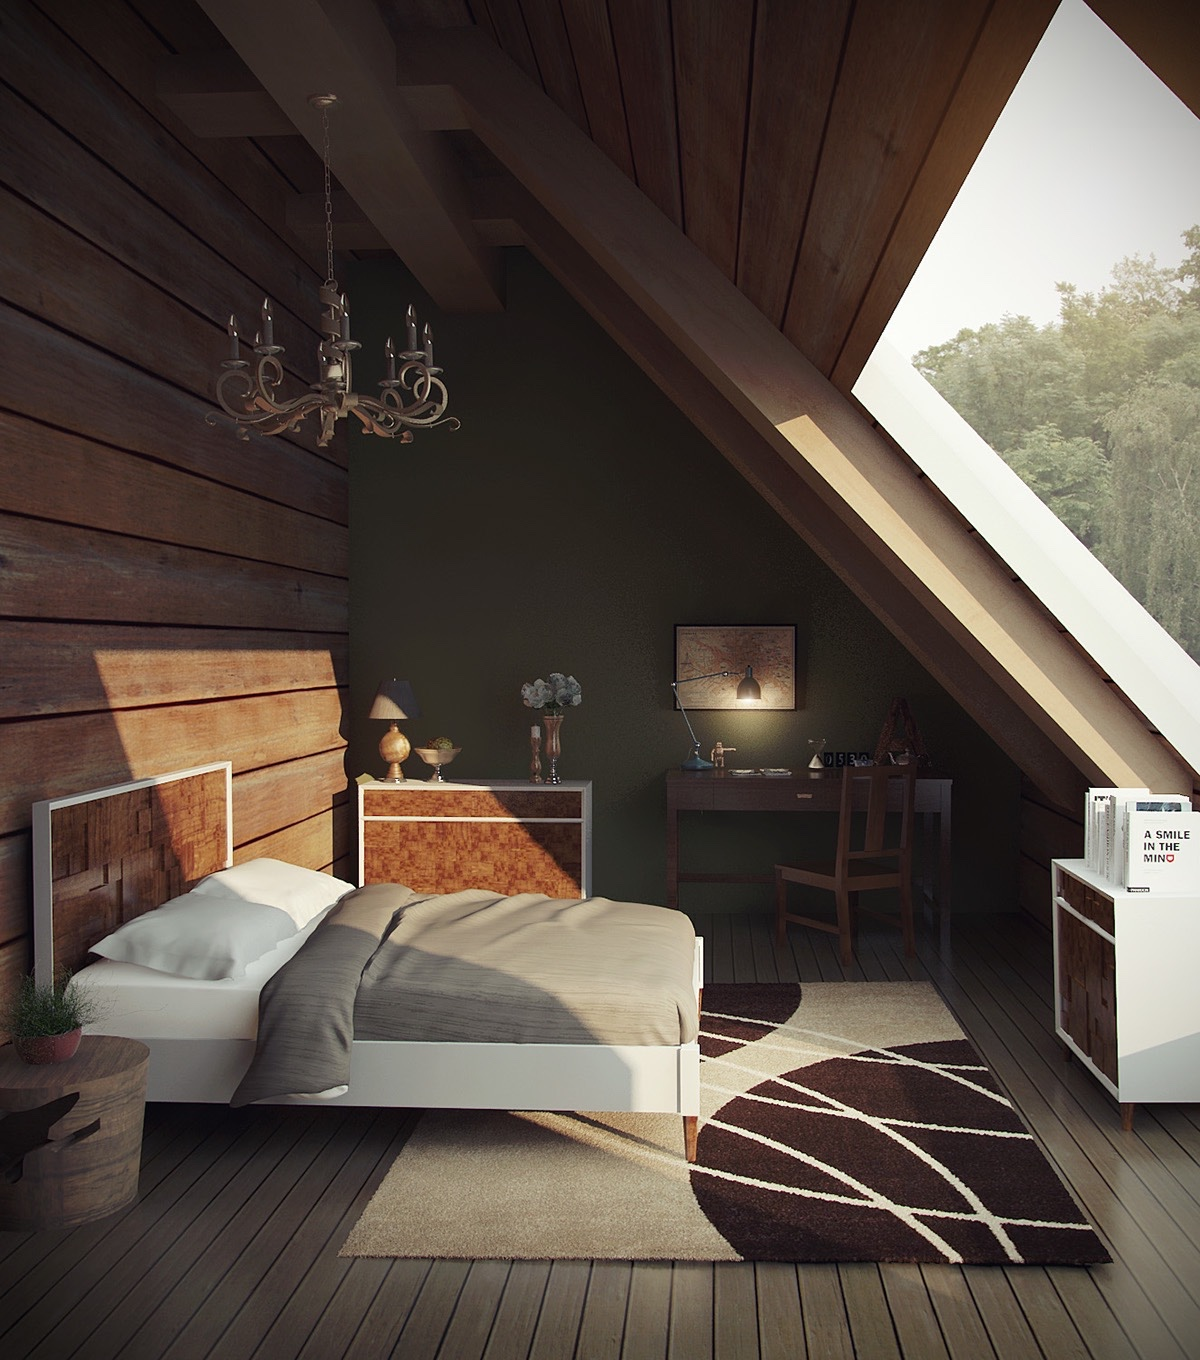 Rustic Bedrooms: Guide And Inspiration For Designing Them images 3